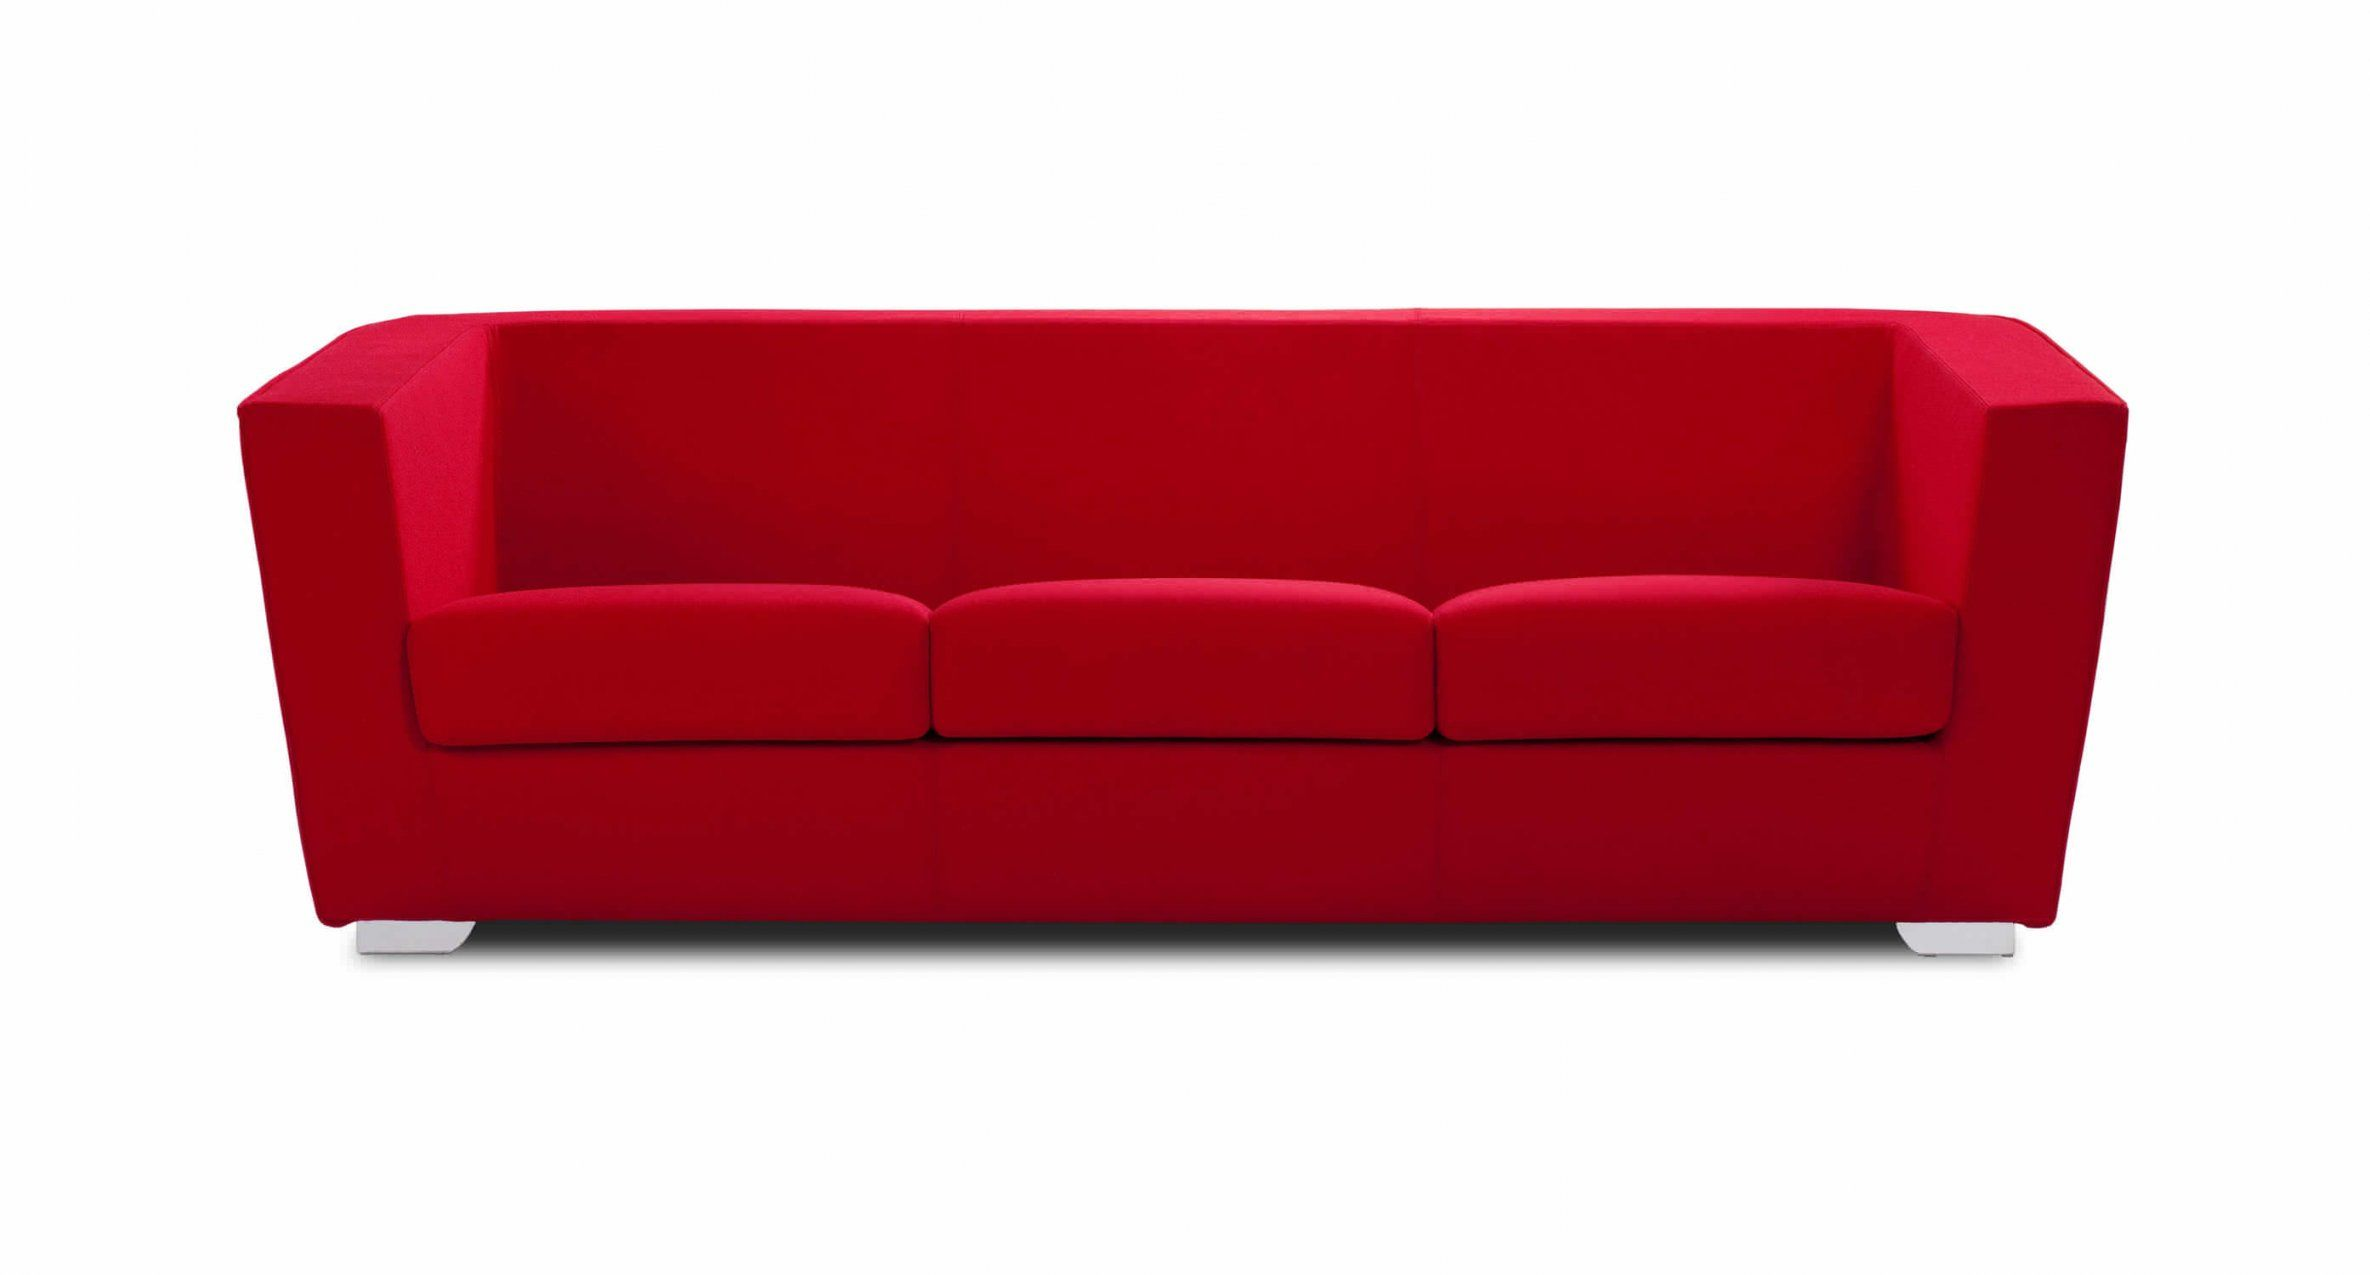 Pin by Sofacouchs on Bedroom Sofa | Contemporary sofa, Sofa, Red sofa